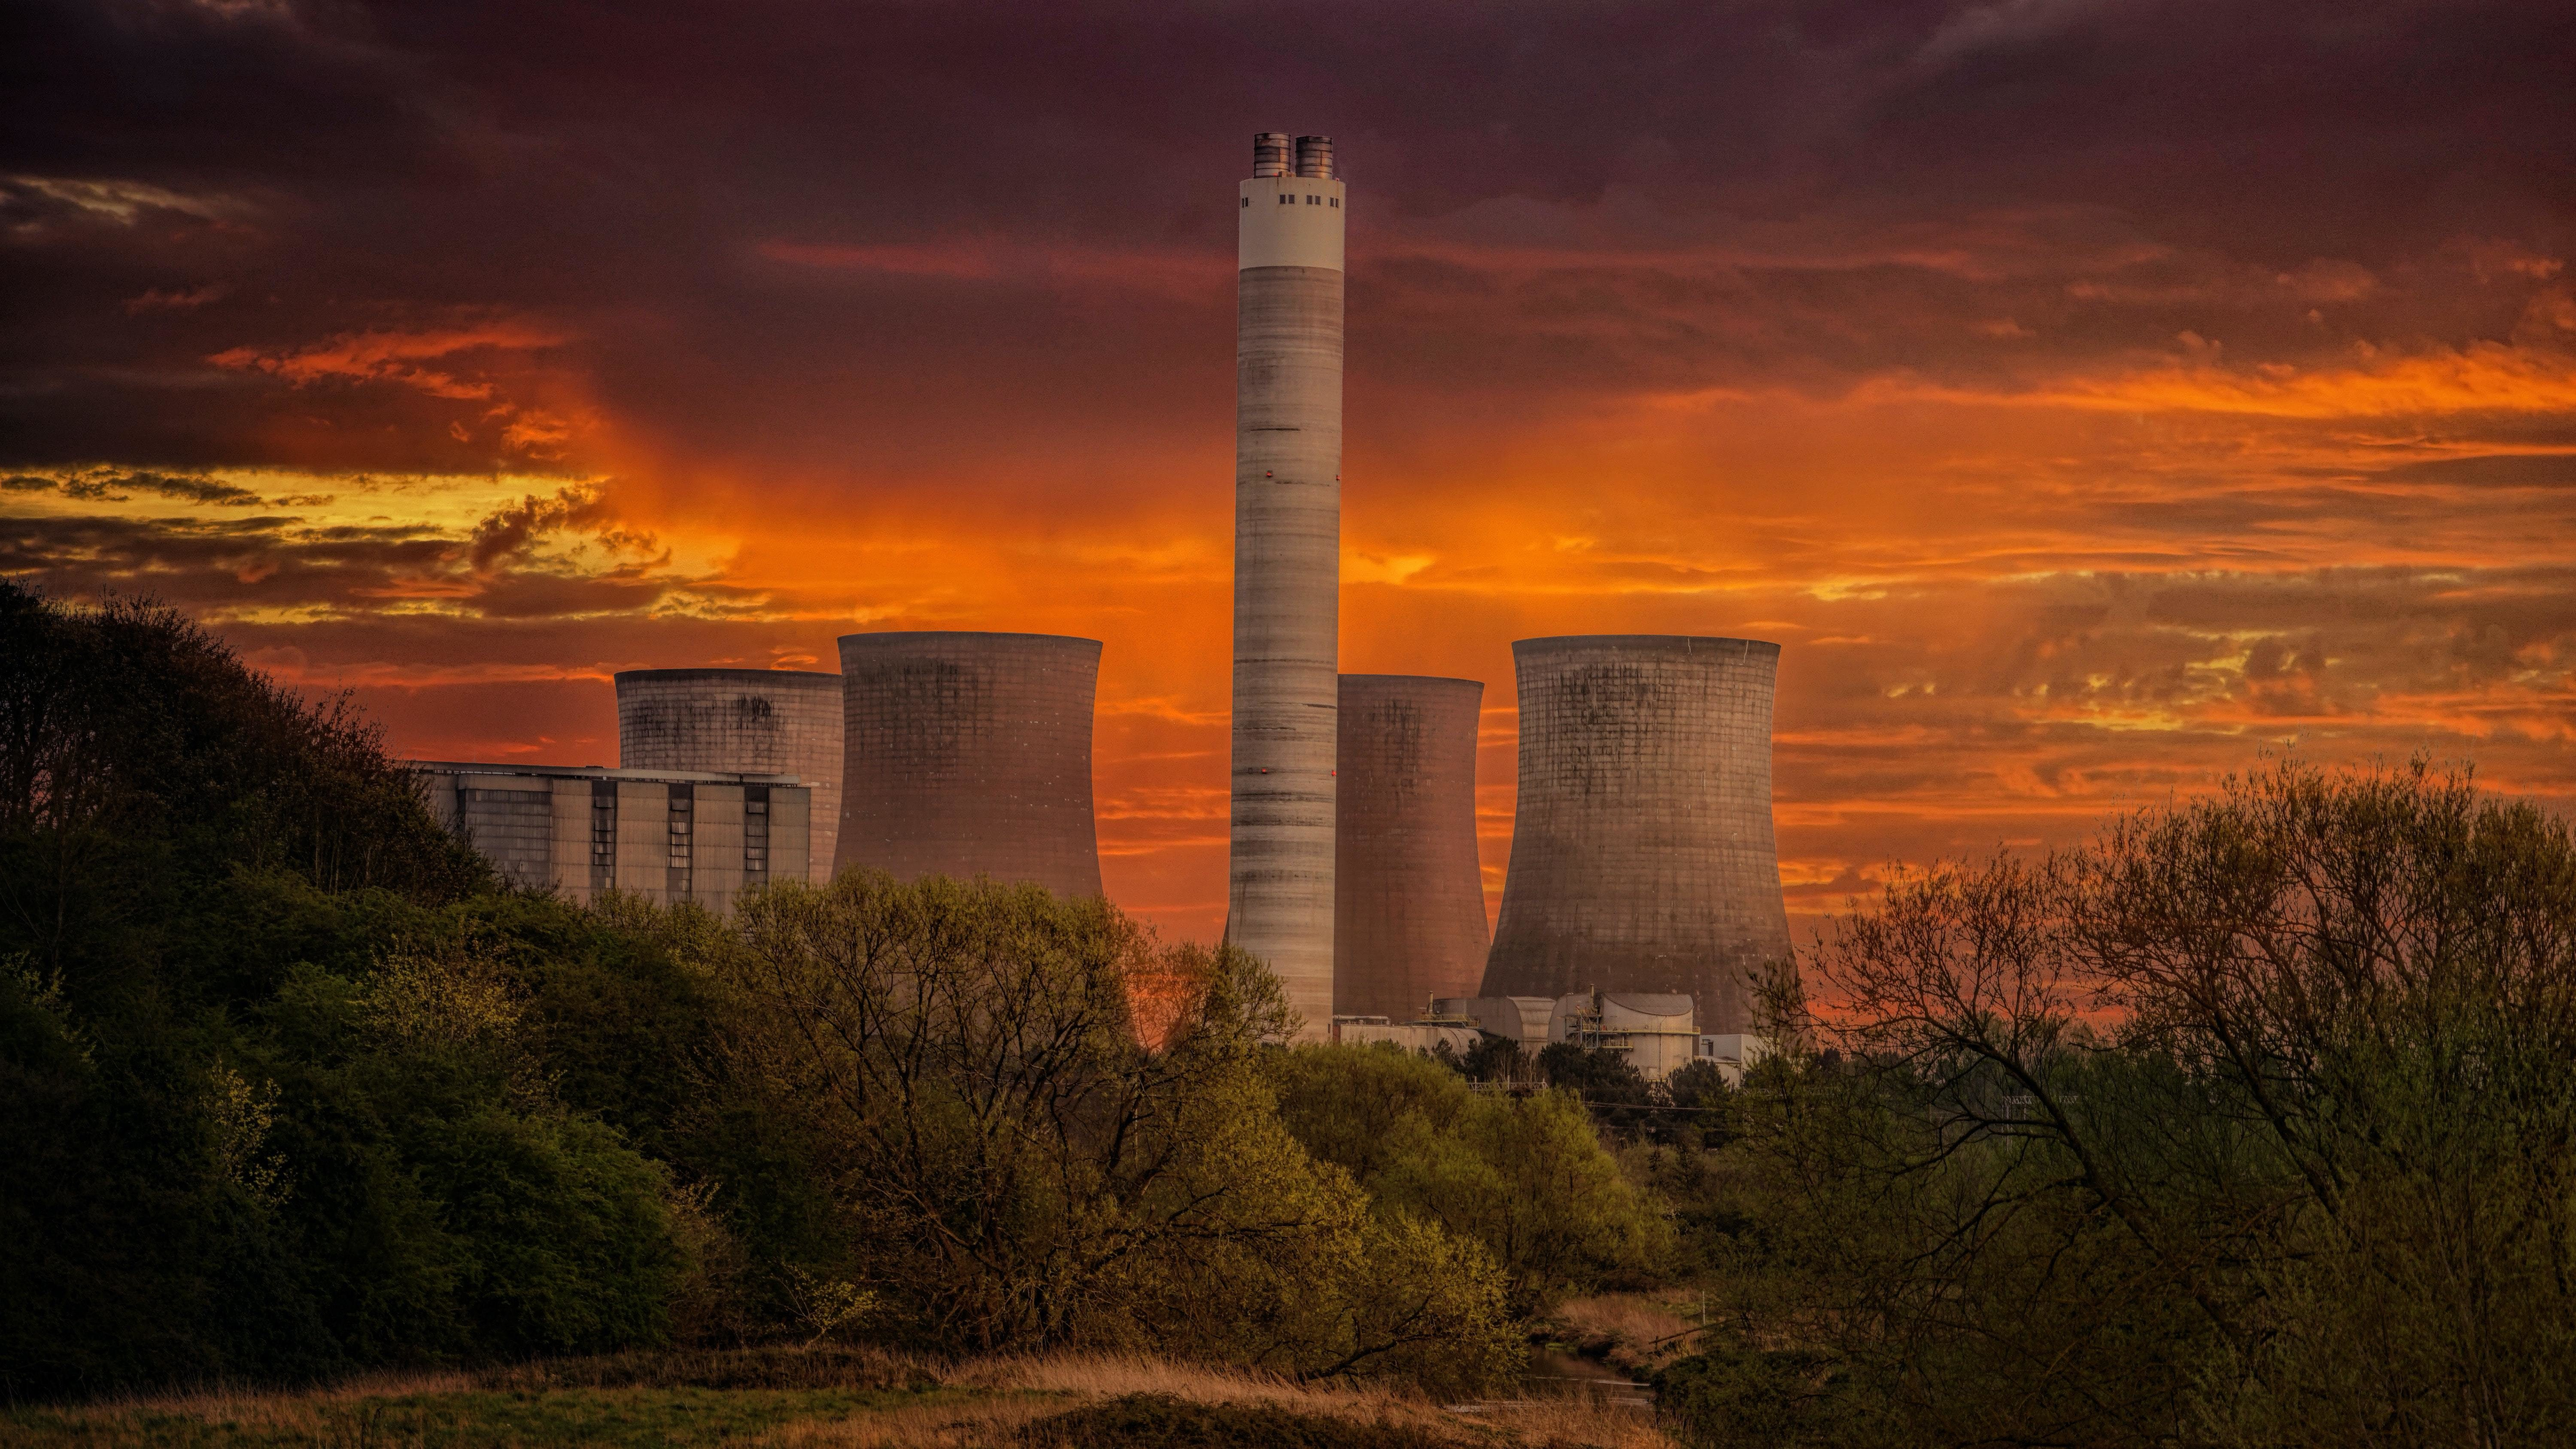 China will soon stop funding overseas coal power plants, like this one here, in a bid to significantly reduce CO2 emissions